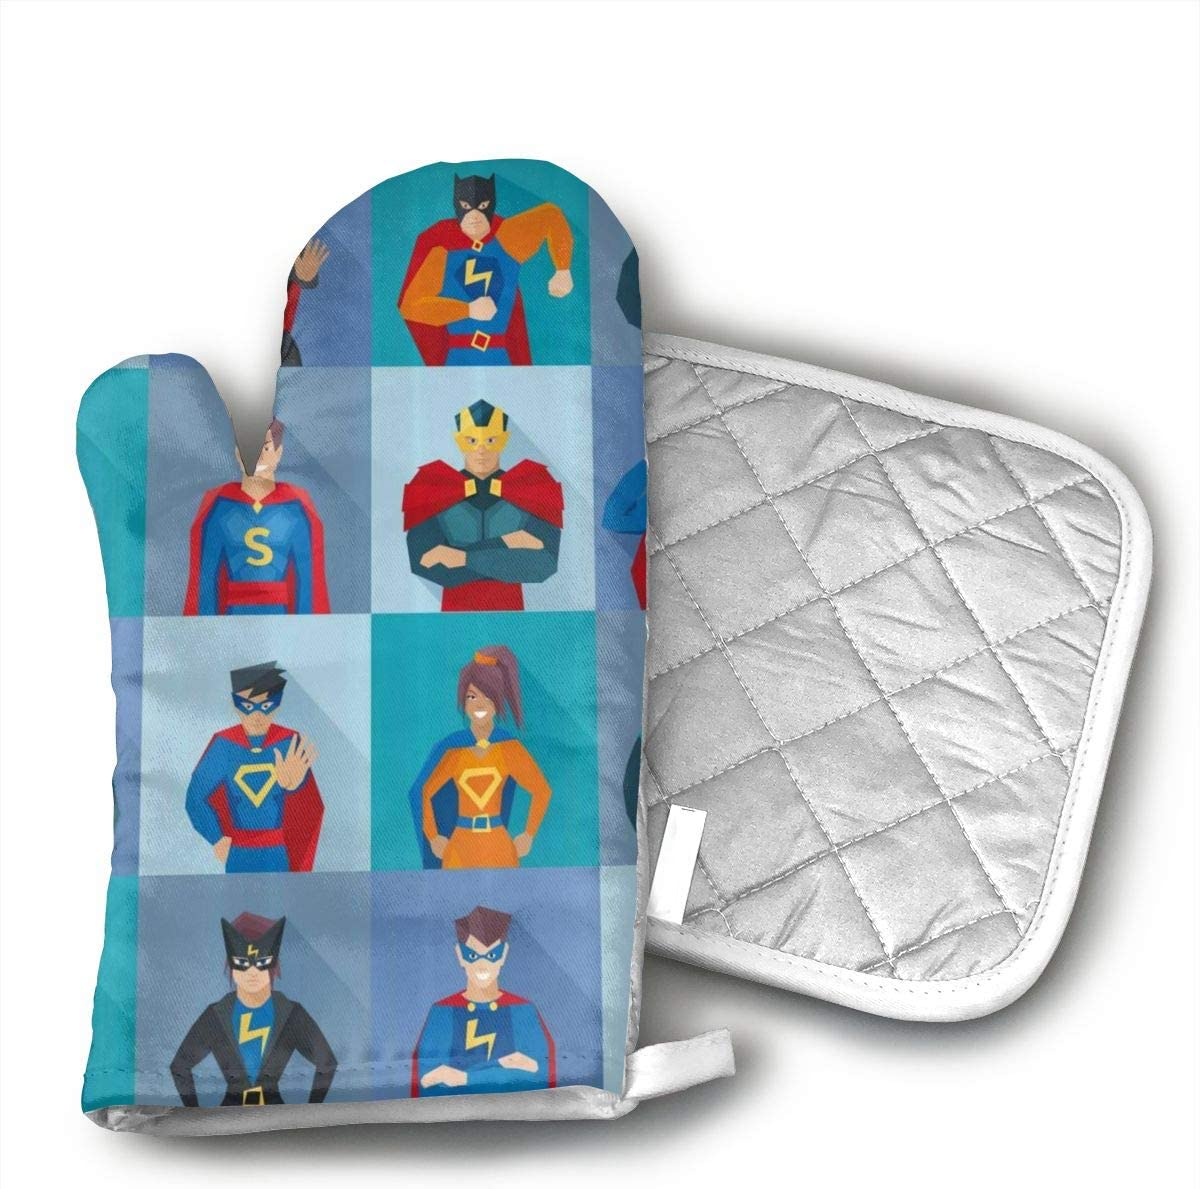 EROJfj Superhero Character Comic Humor Oven Mitts and Potholders BBQ Gloves-Oven Mitts and Pot Holders Non-Slip Cooking Gloves for Cooking Baking Grilling